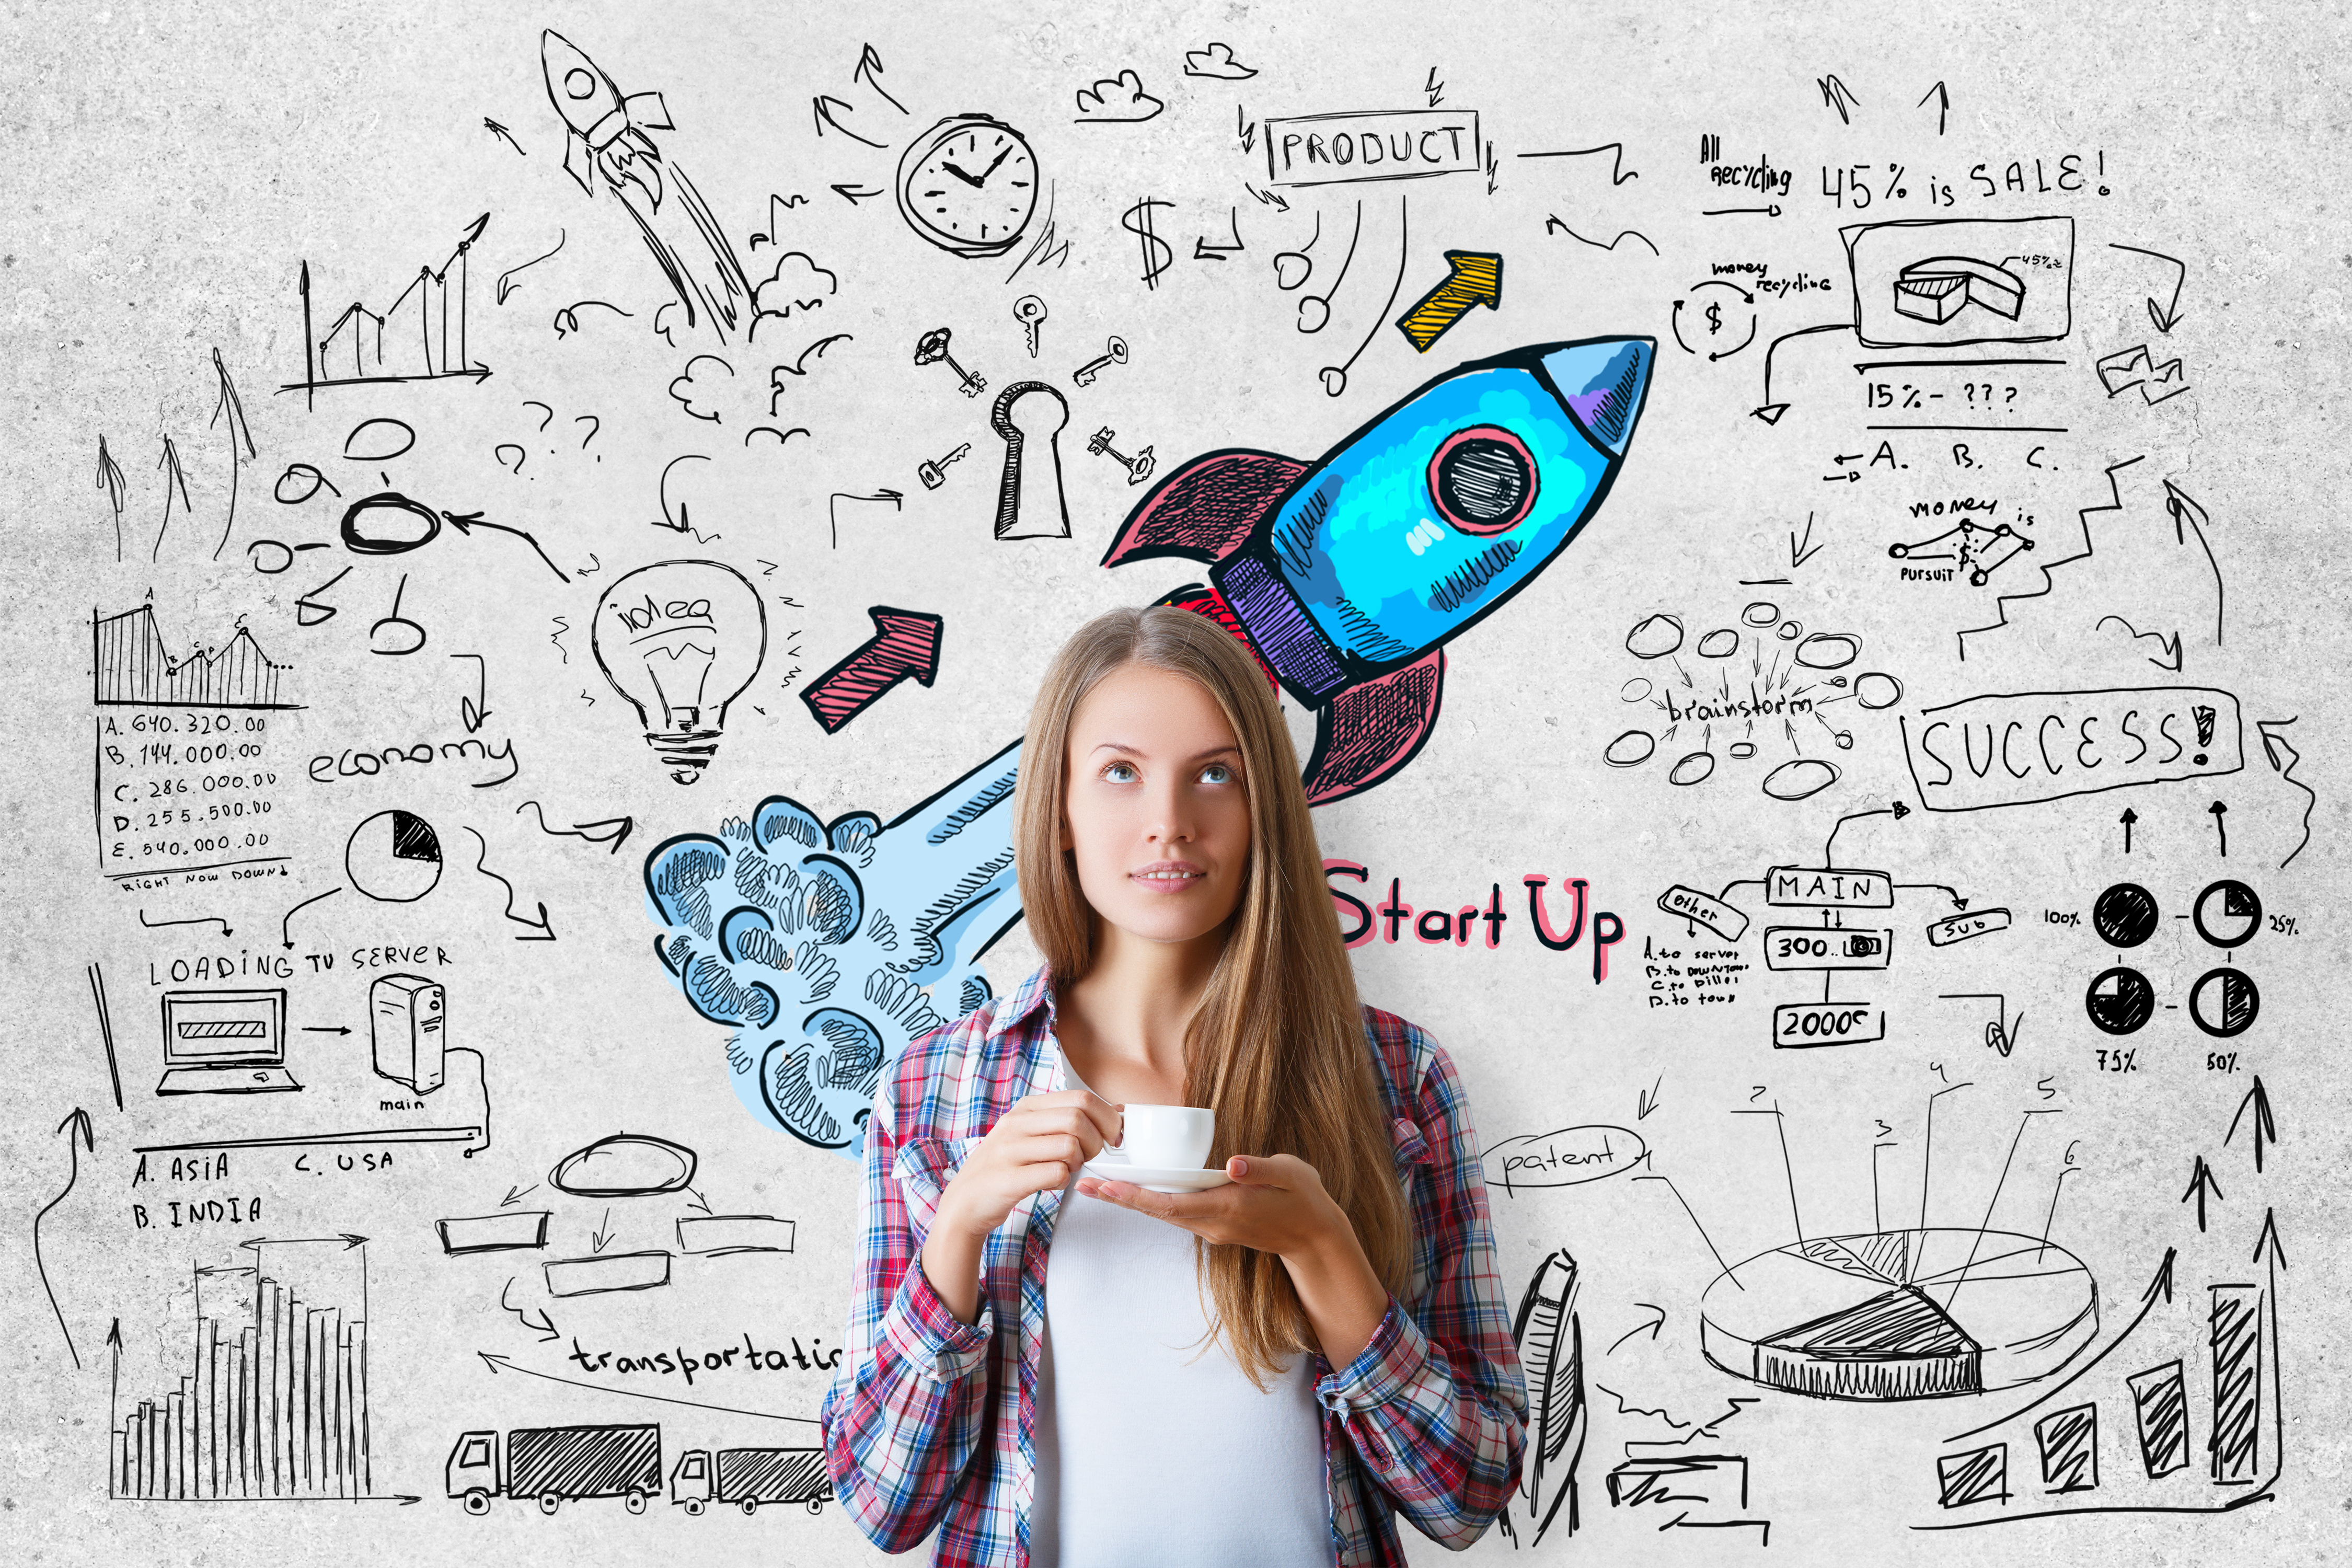 Young European woman drinking coffee on concrete background with colorful launching rocket sketch. Registering a company name concept